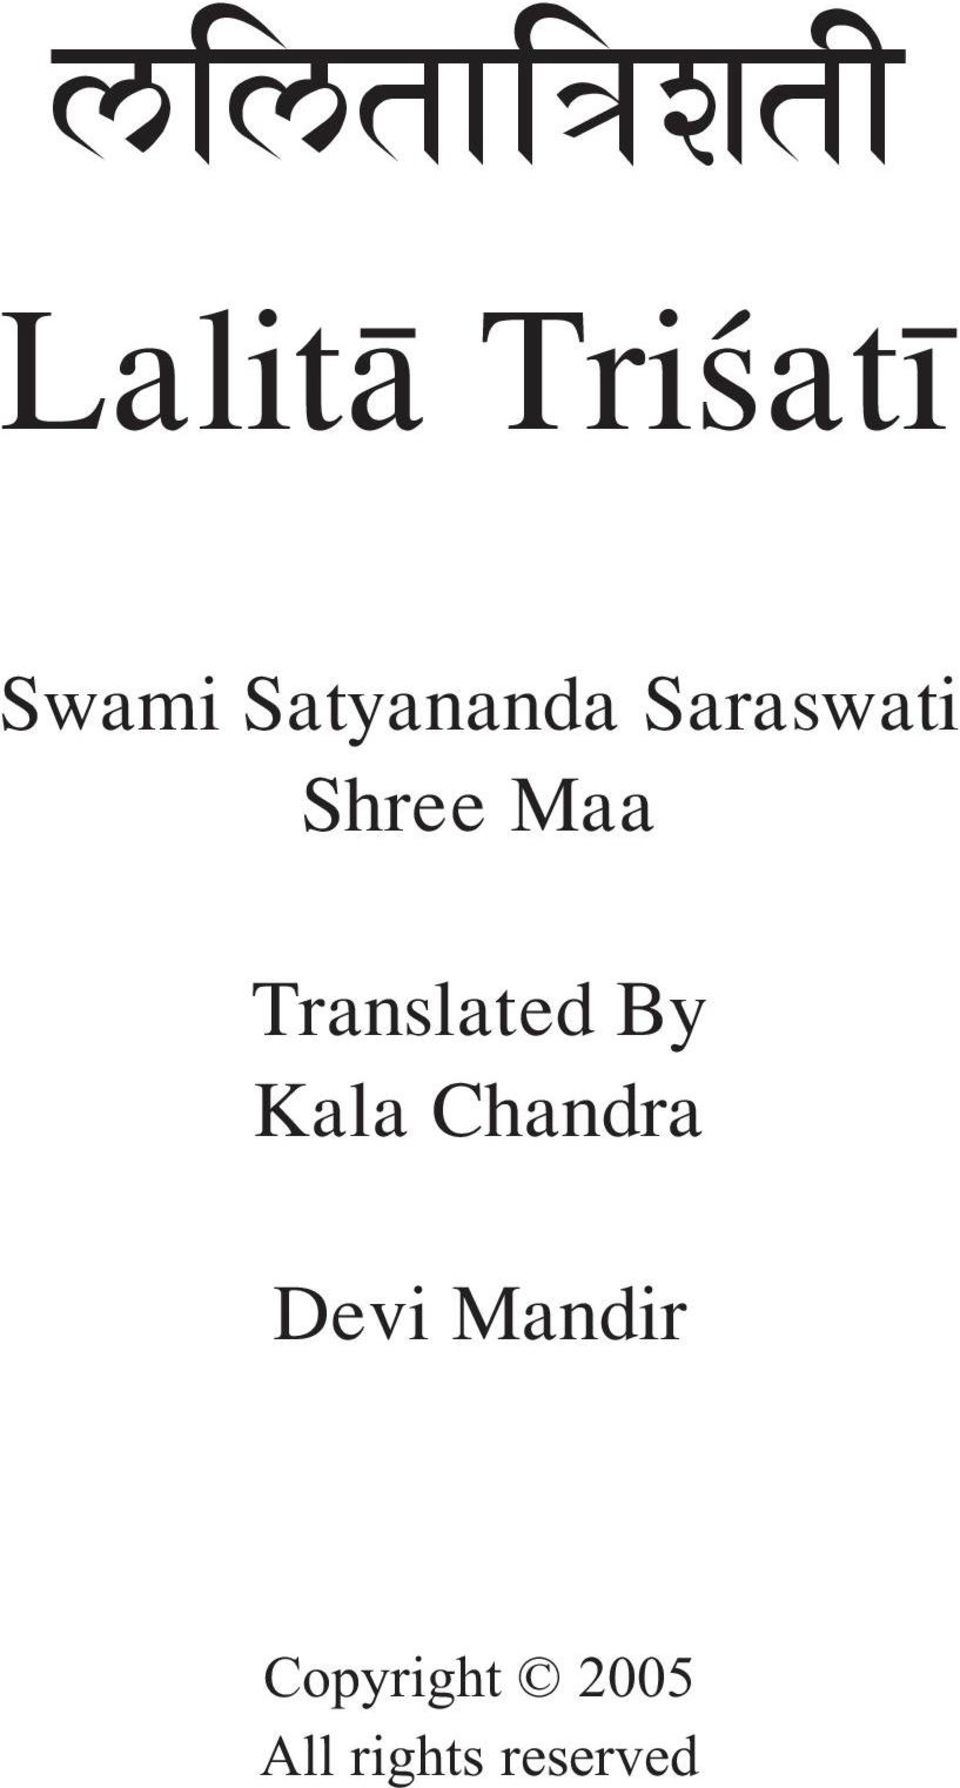 Translated By Kala Chandra